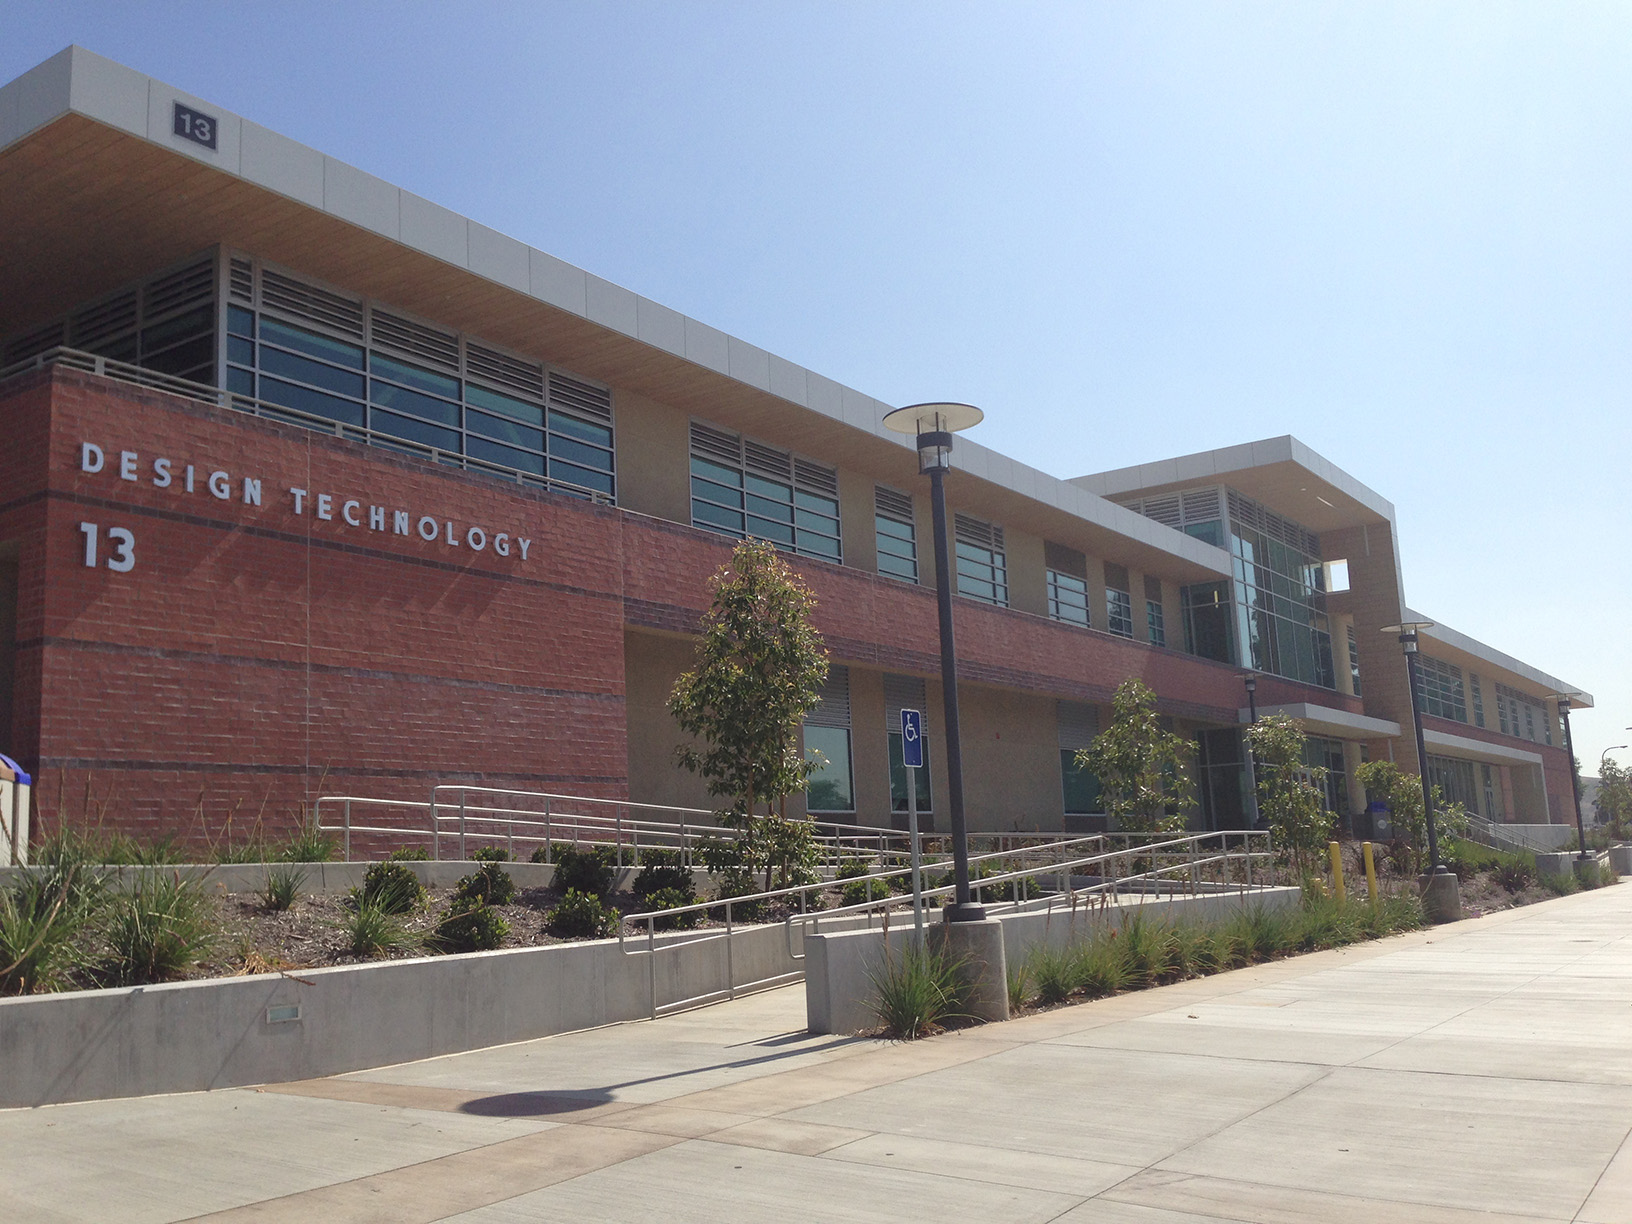 Mt. Sac Design Technology Center